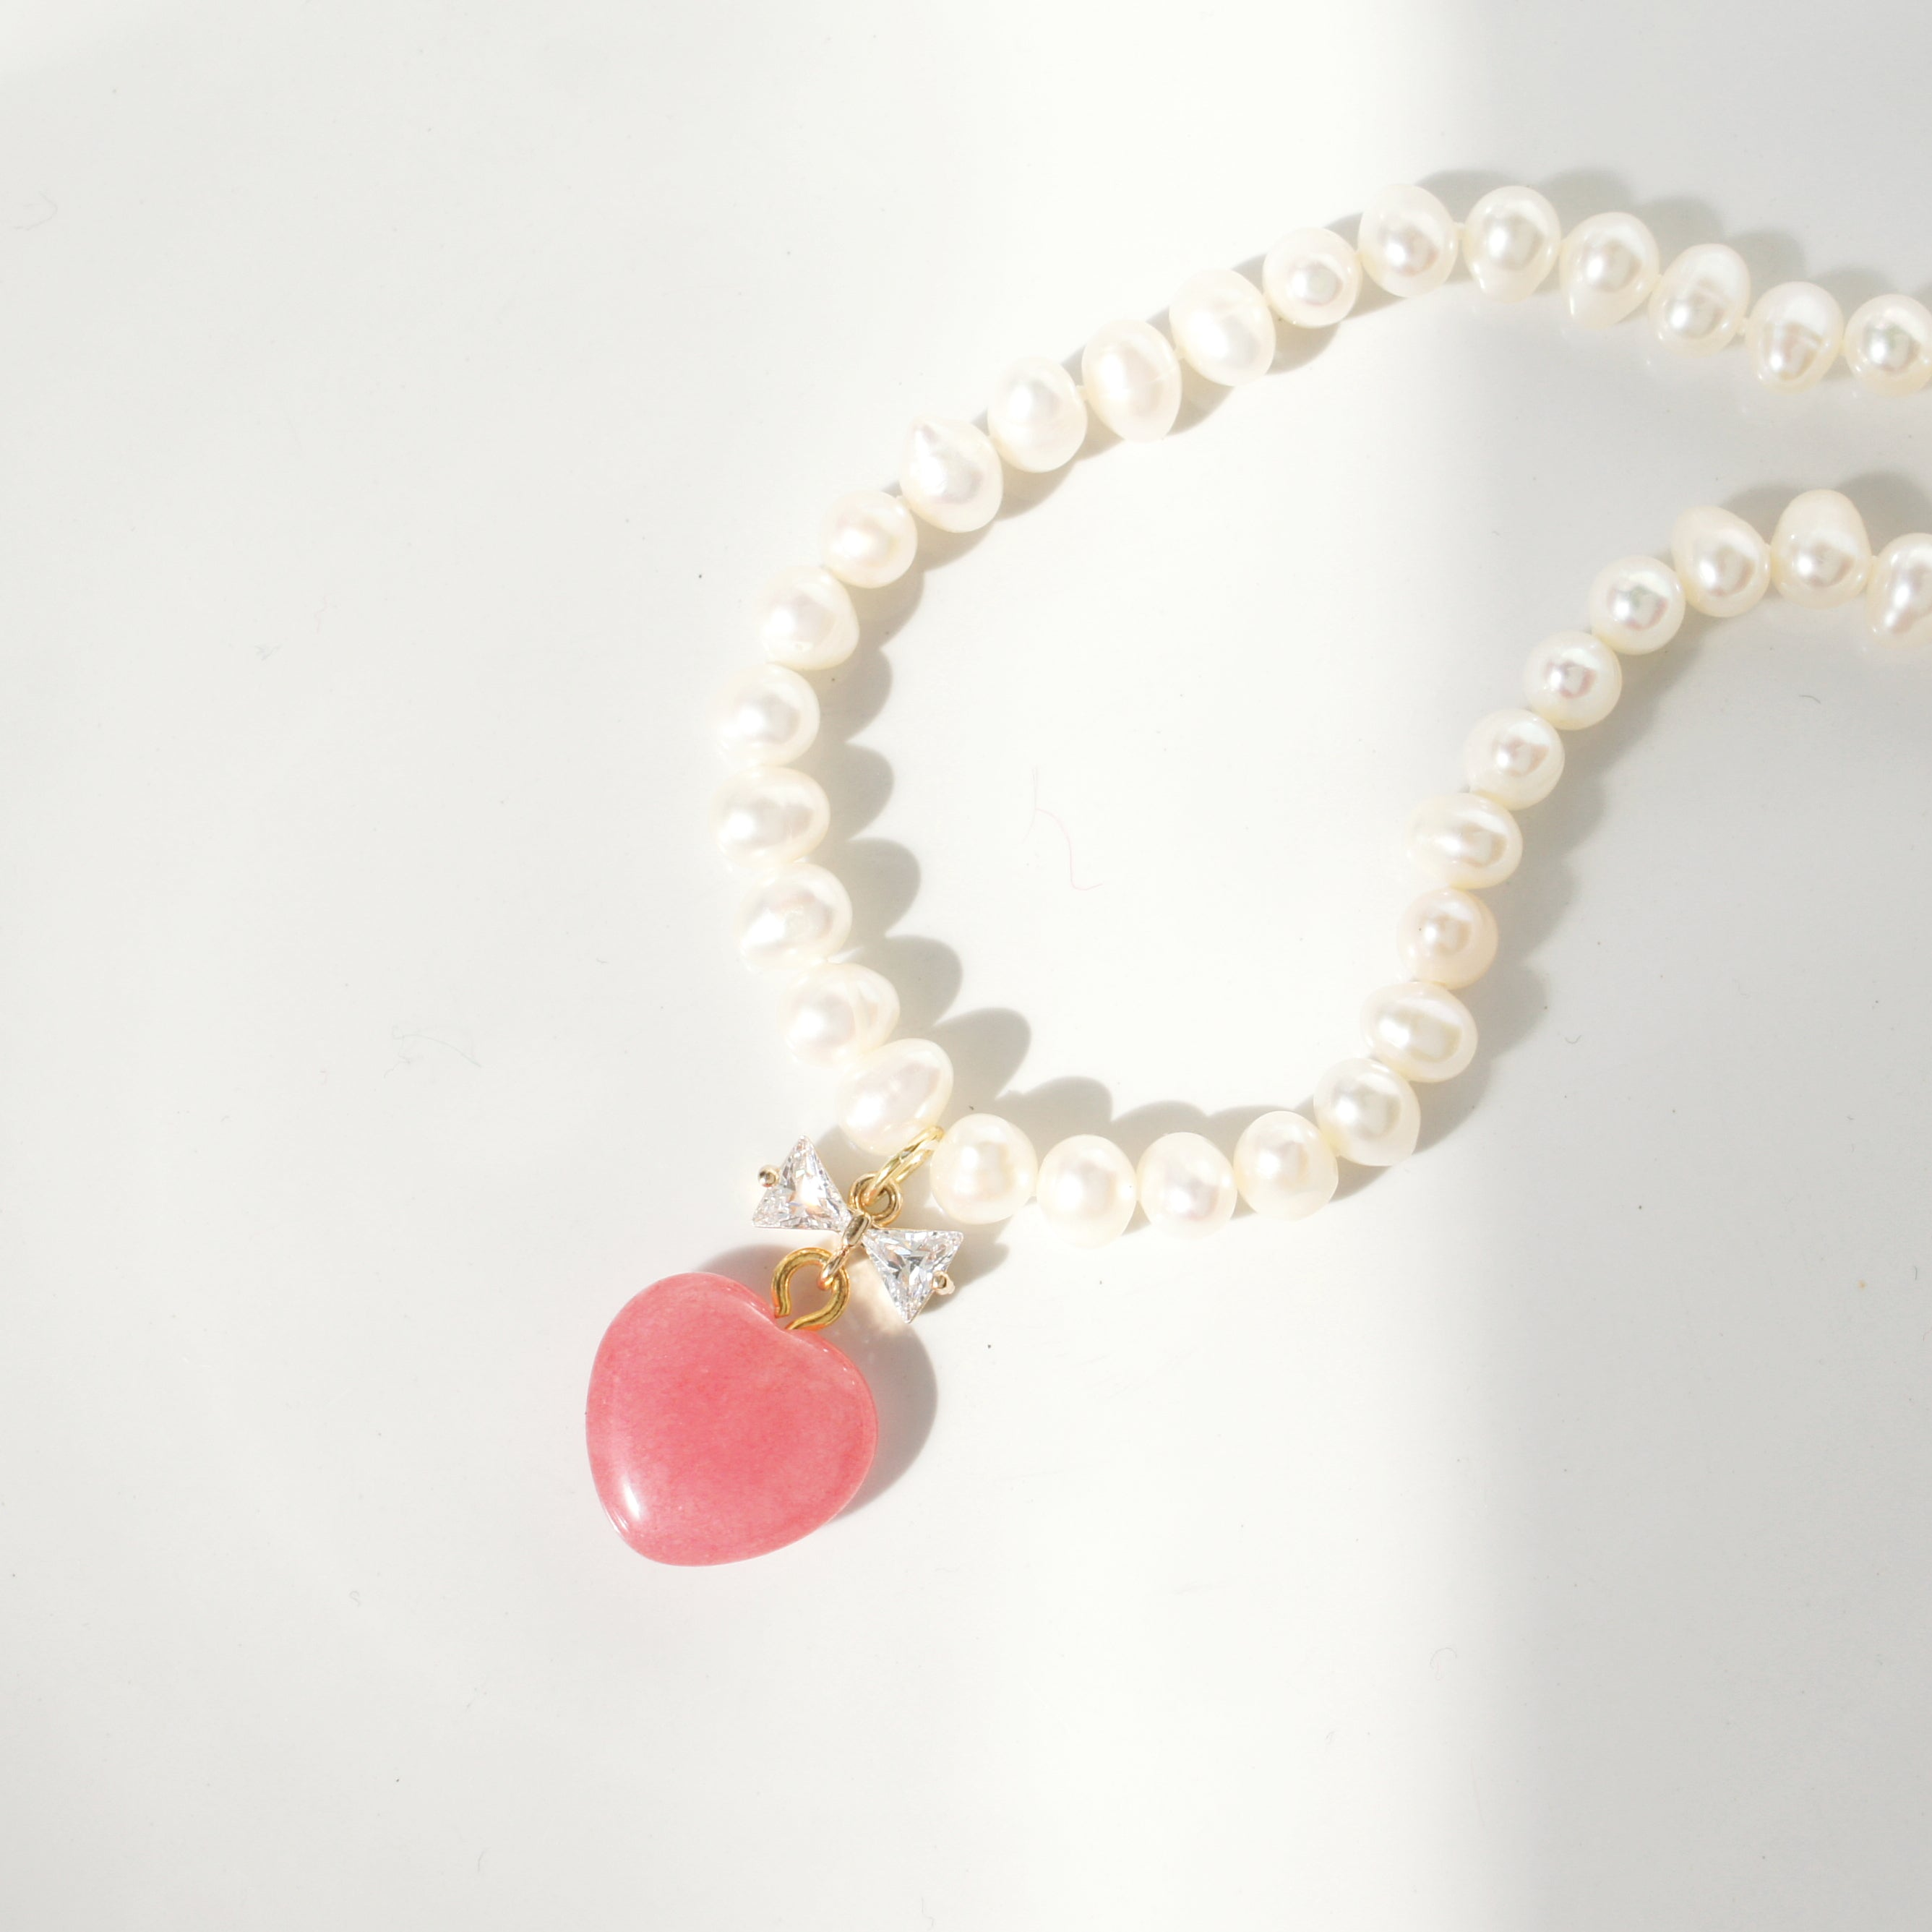 Pink Sugar Freshwater Pearl Collar Necklace with Rose Quartz Heart Pendant